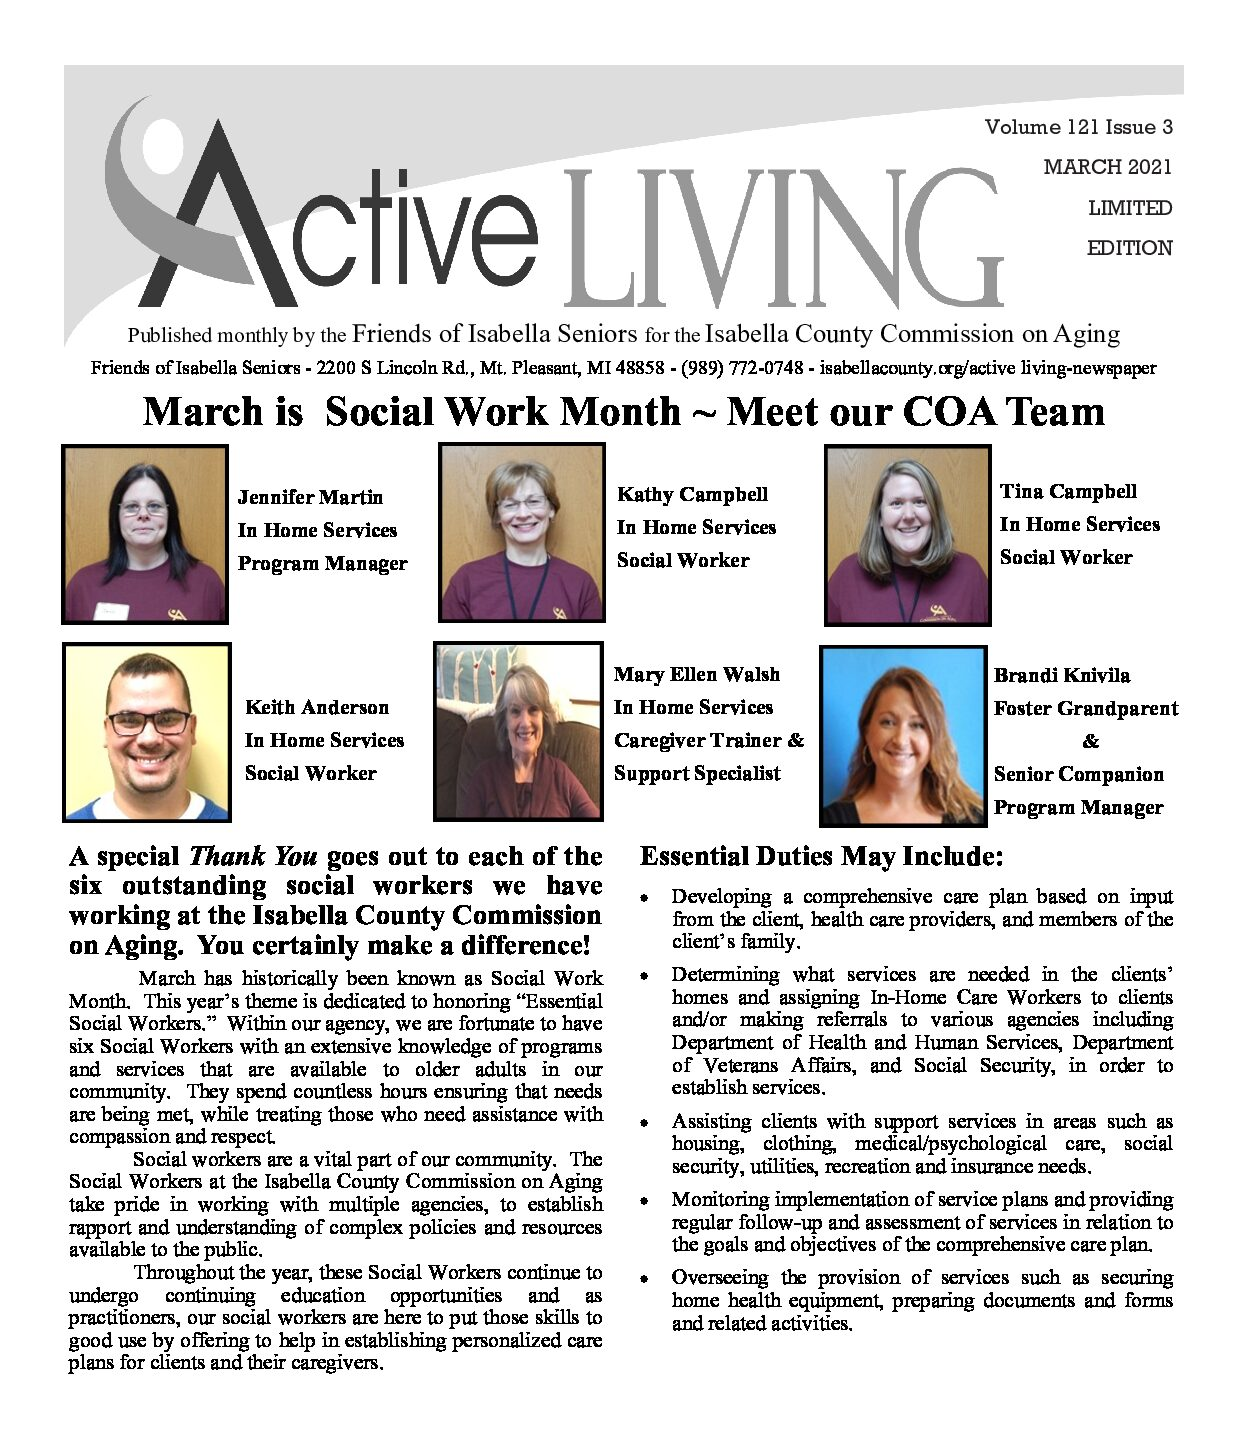 preview image of first page March 2021 Active Living